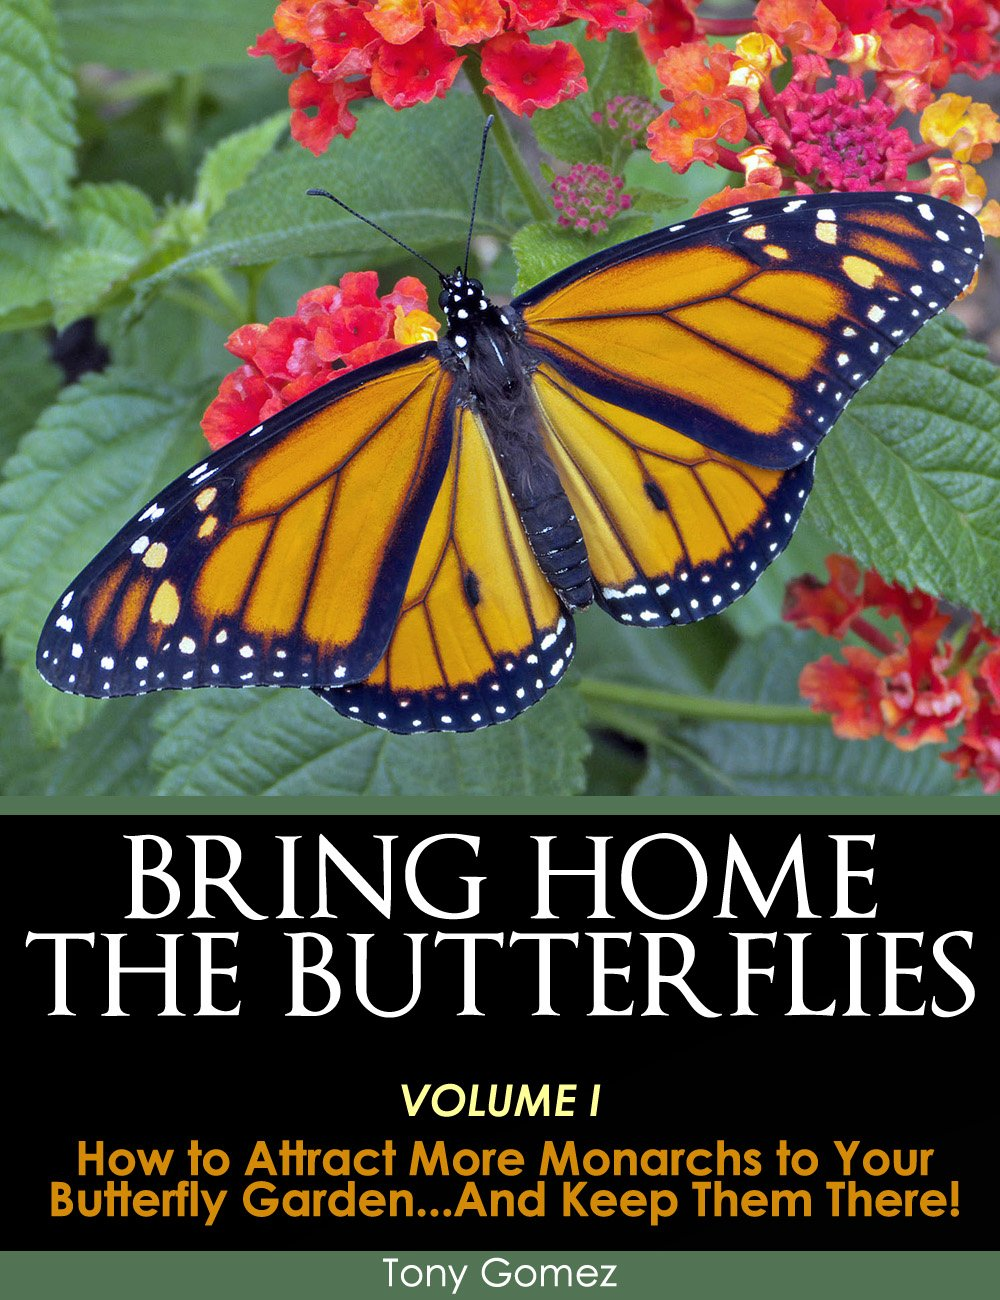 8 Top Gardening Tips that you can use to Attract and Support More Monarchs in your Garden. This five-star customer rated butterfly garden book is available as a PDF download and the resource links are updated for your convenience. Start planning your butterfly garden today